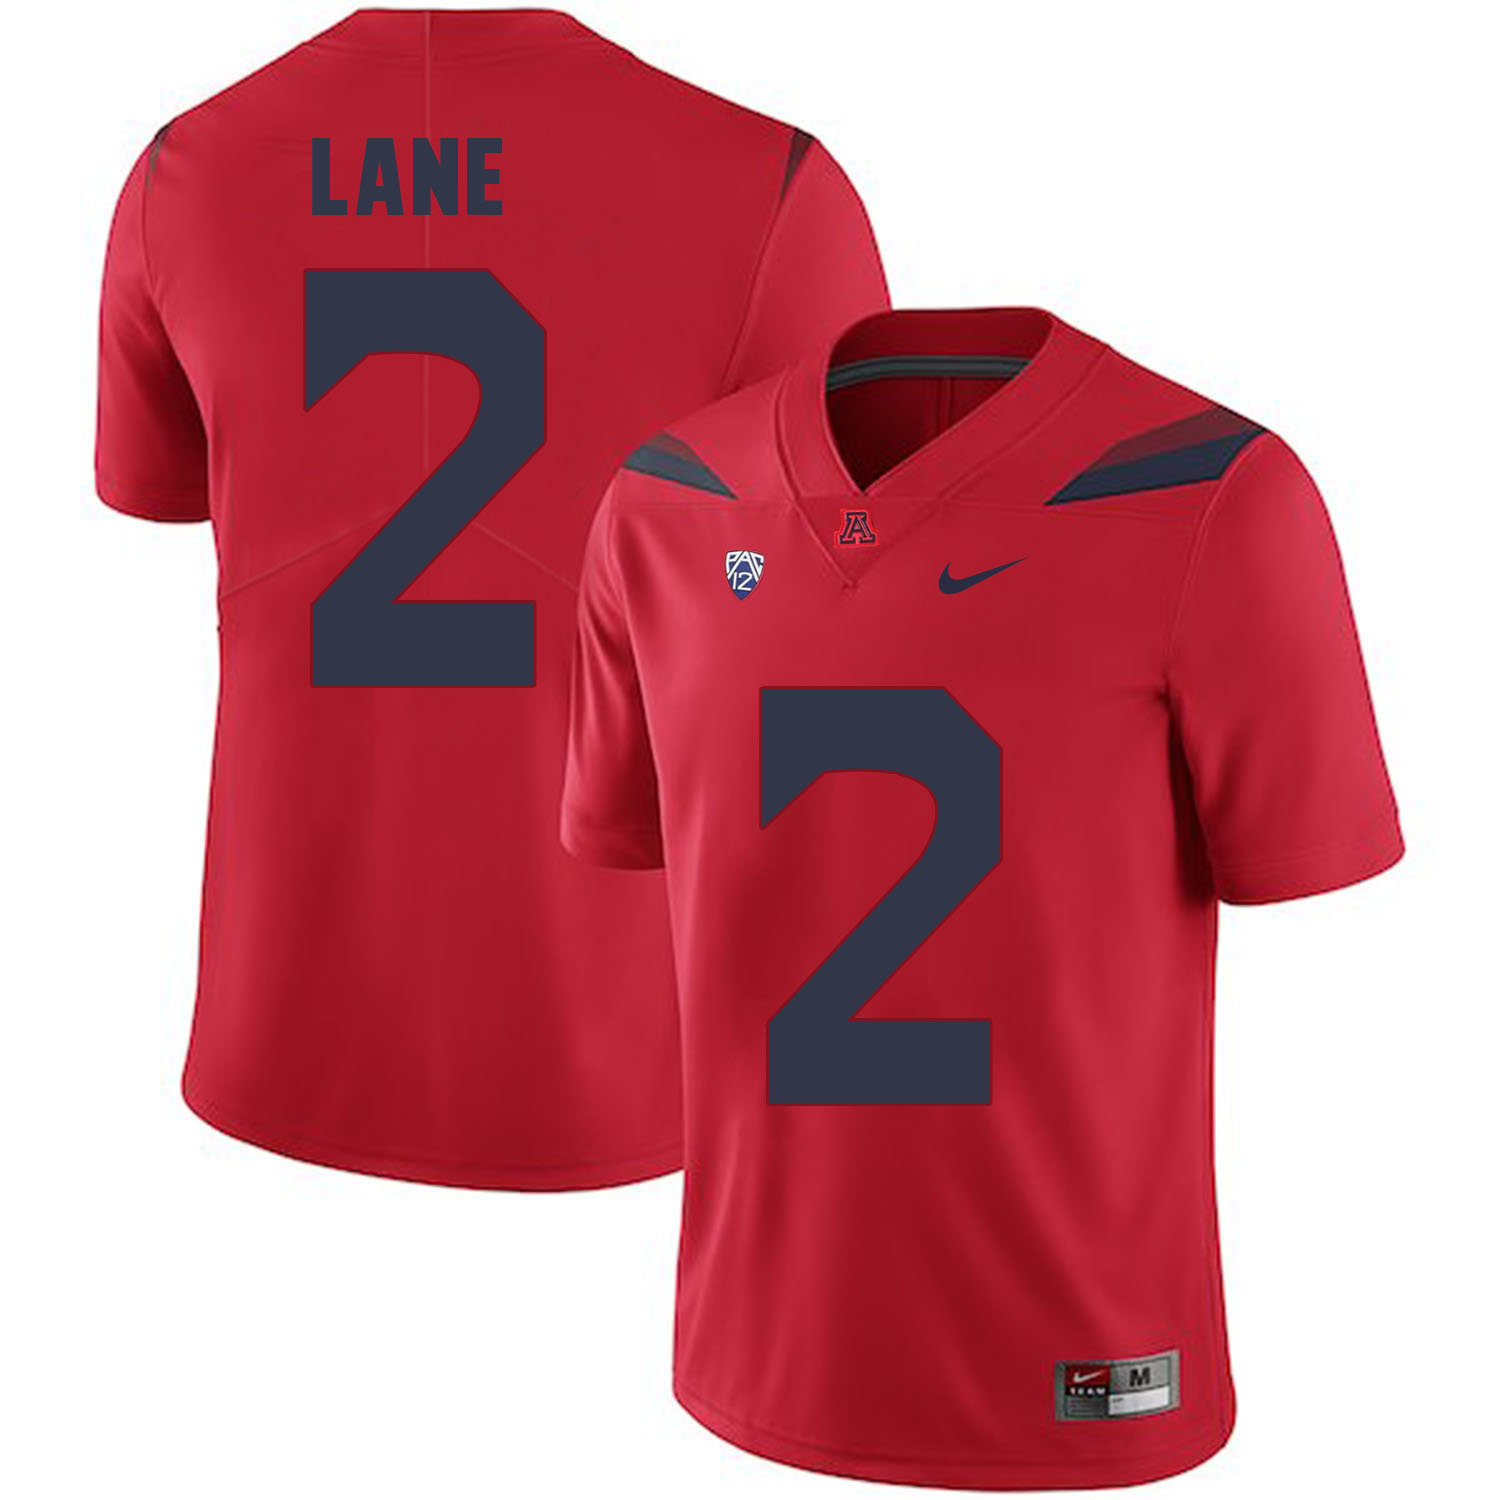 Arizona Wildcats 2 K'Hari Lane Red College Football Jersey